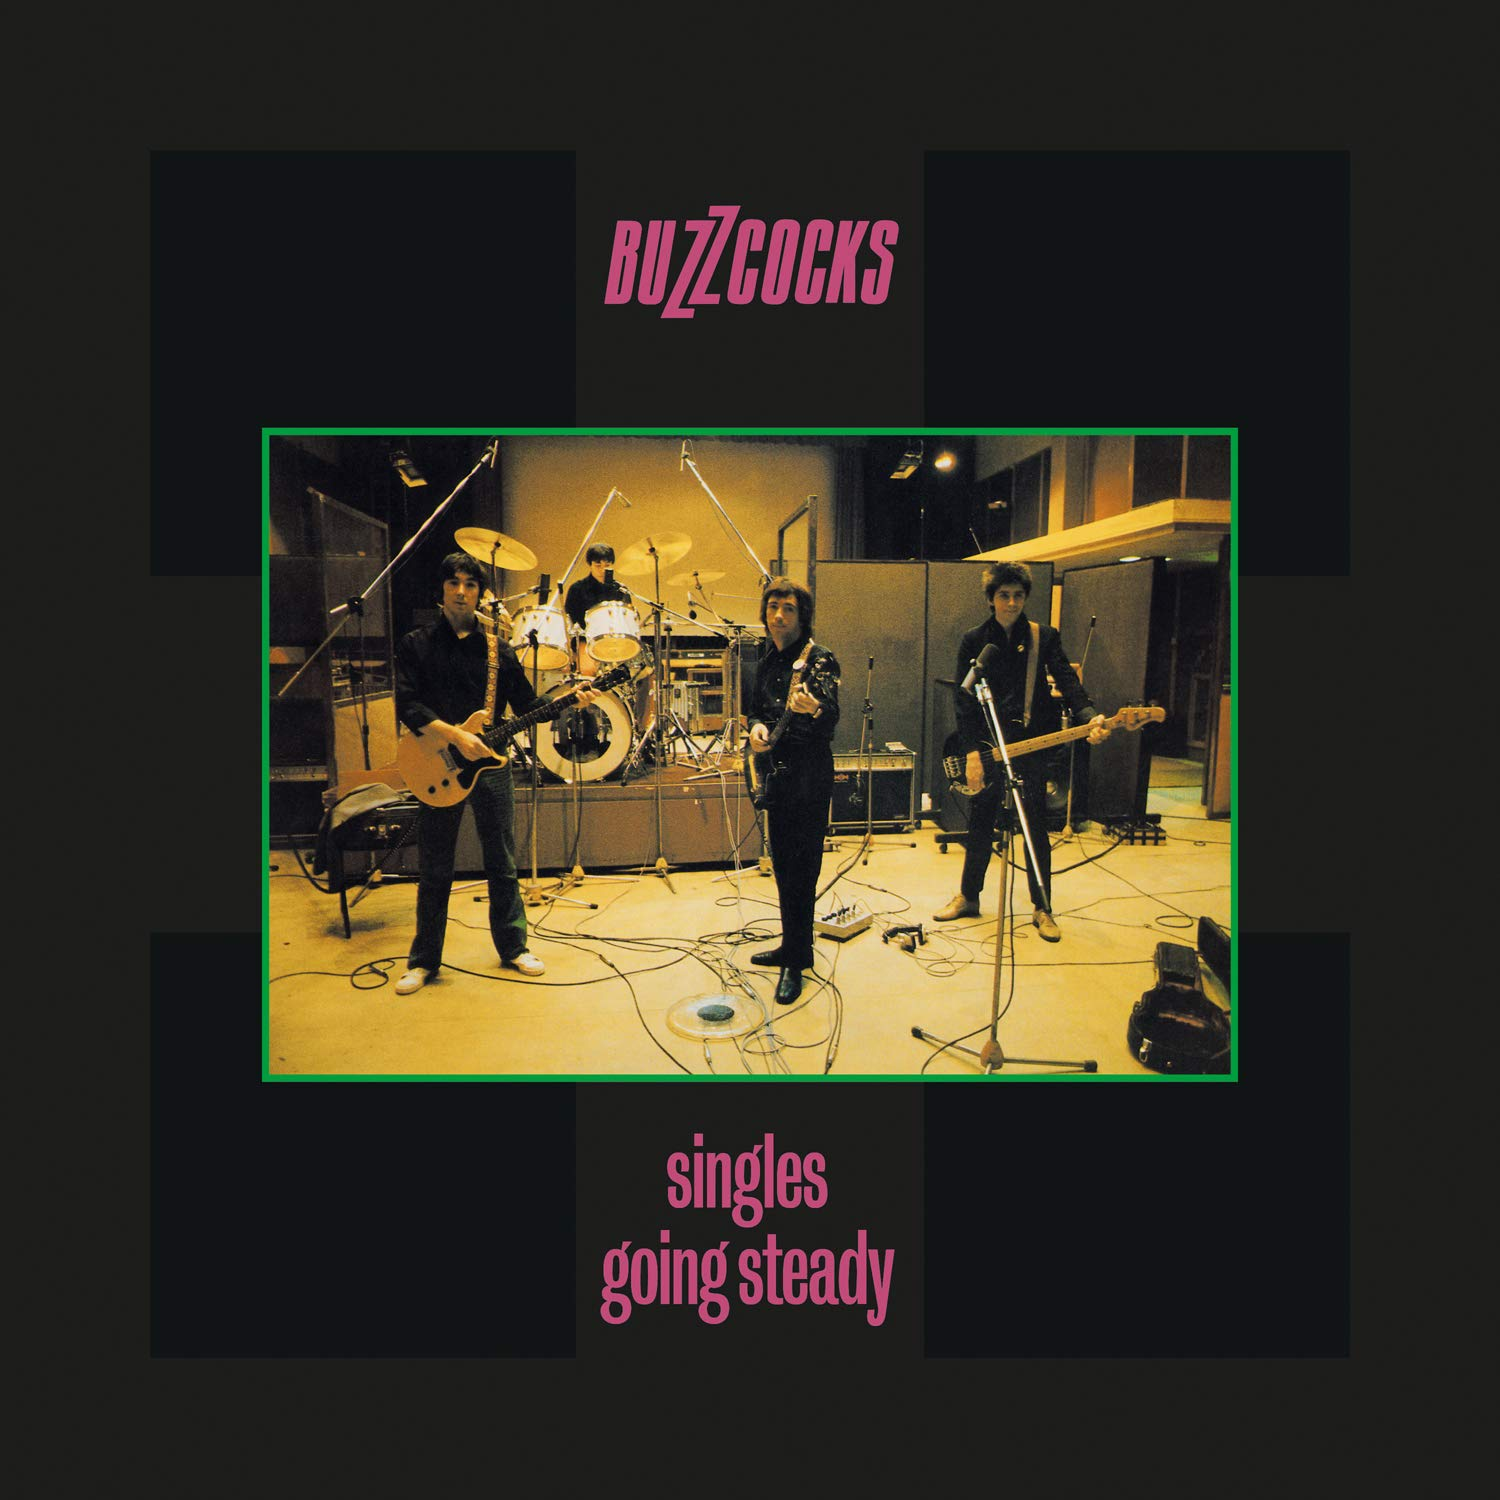 Buzzcocks - Singles Going Steady [Indie Exclusive Limited Edition Purpleish Pink LP]